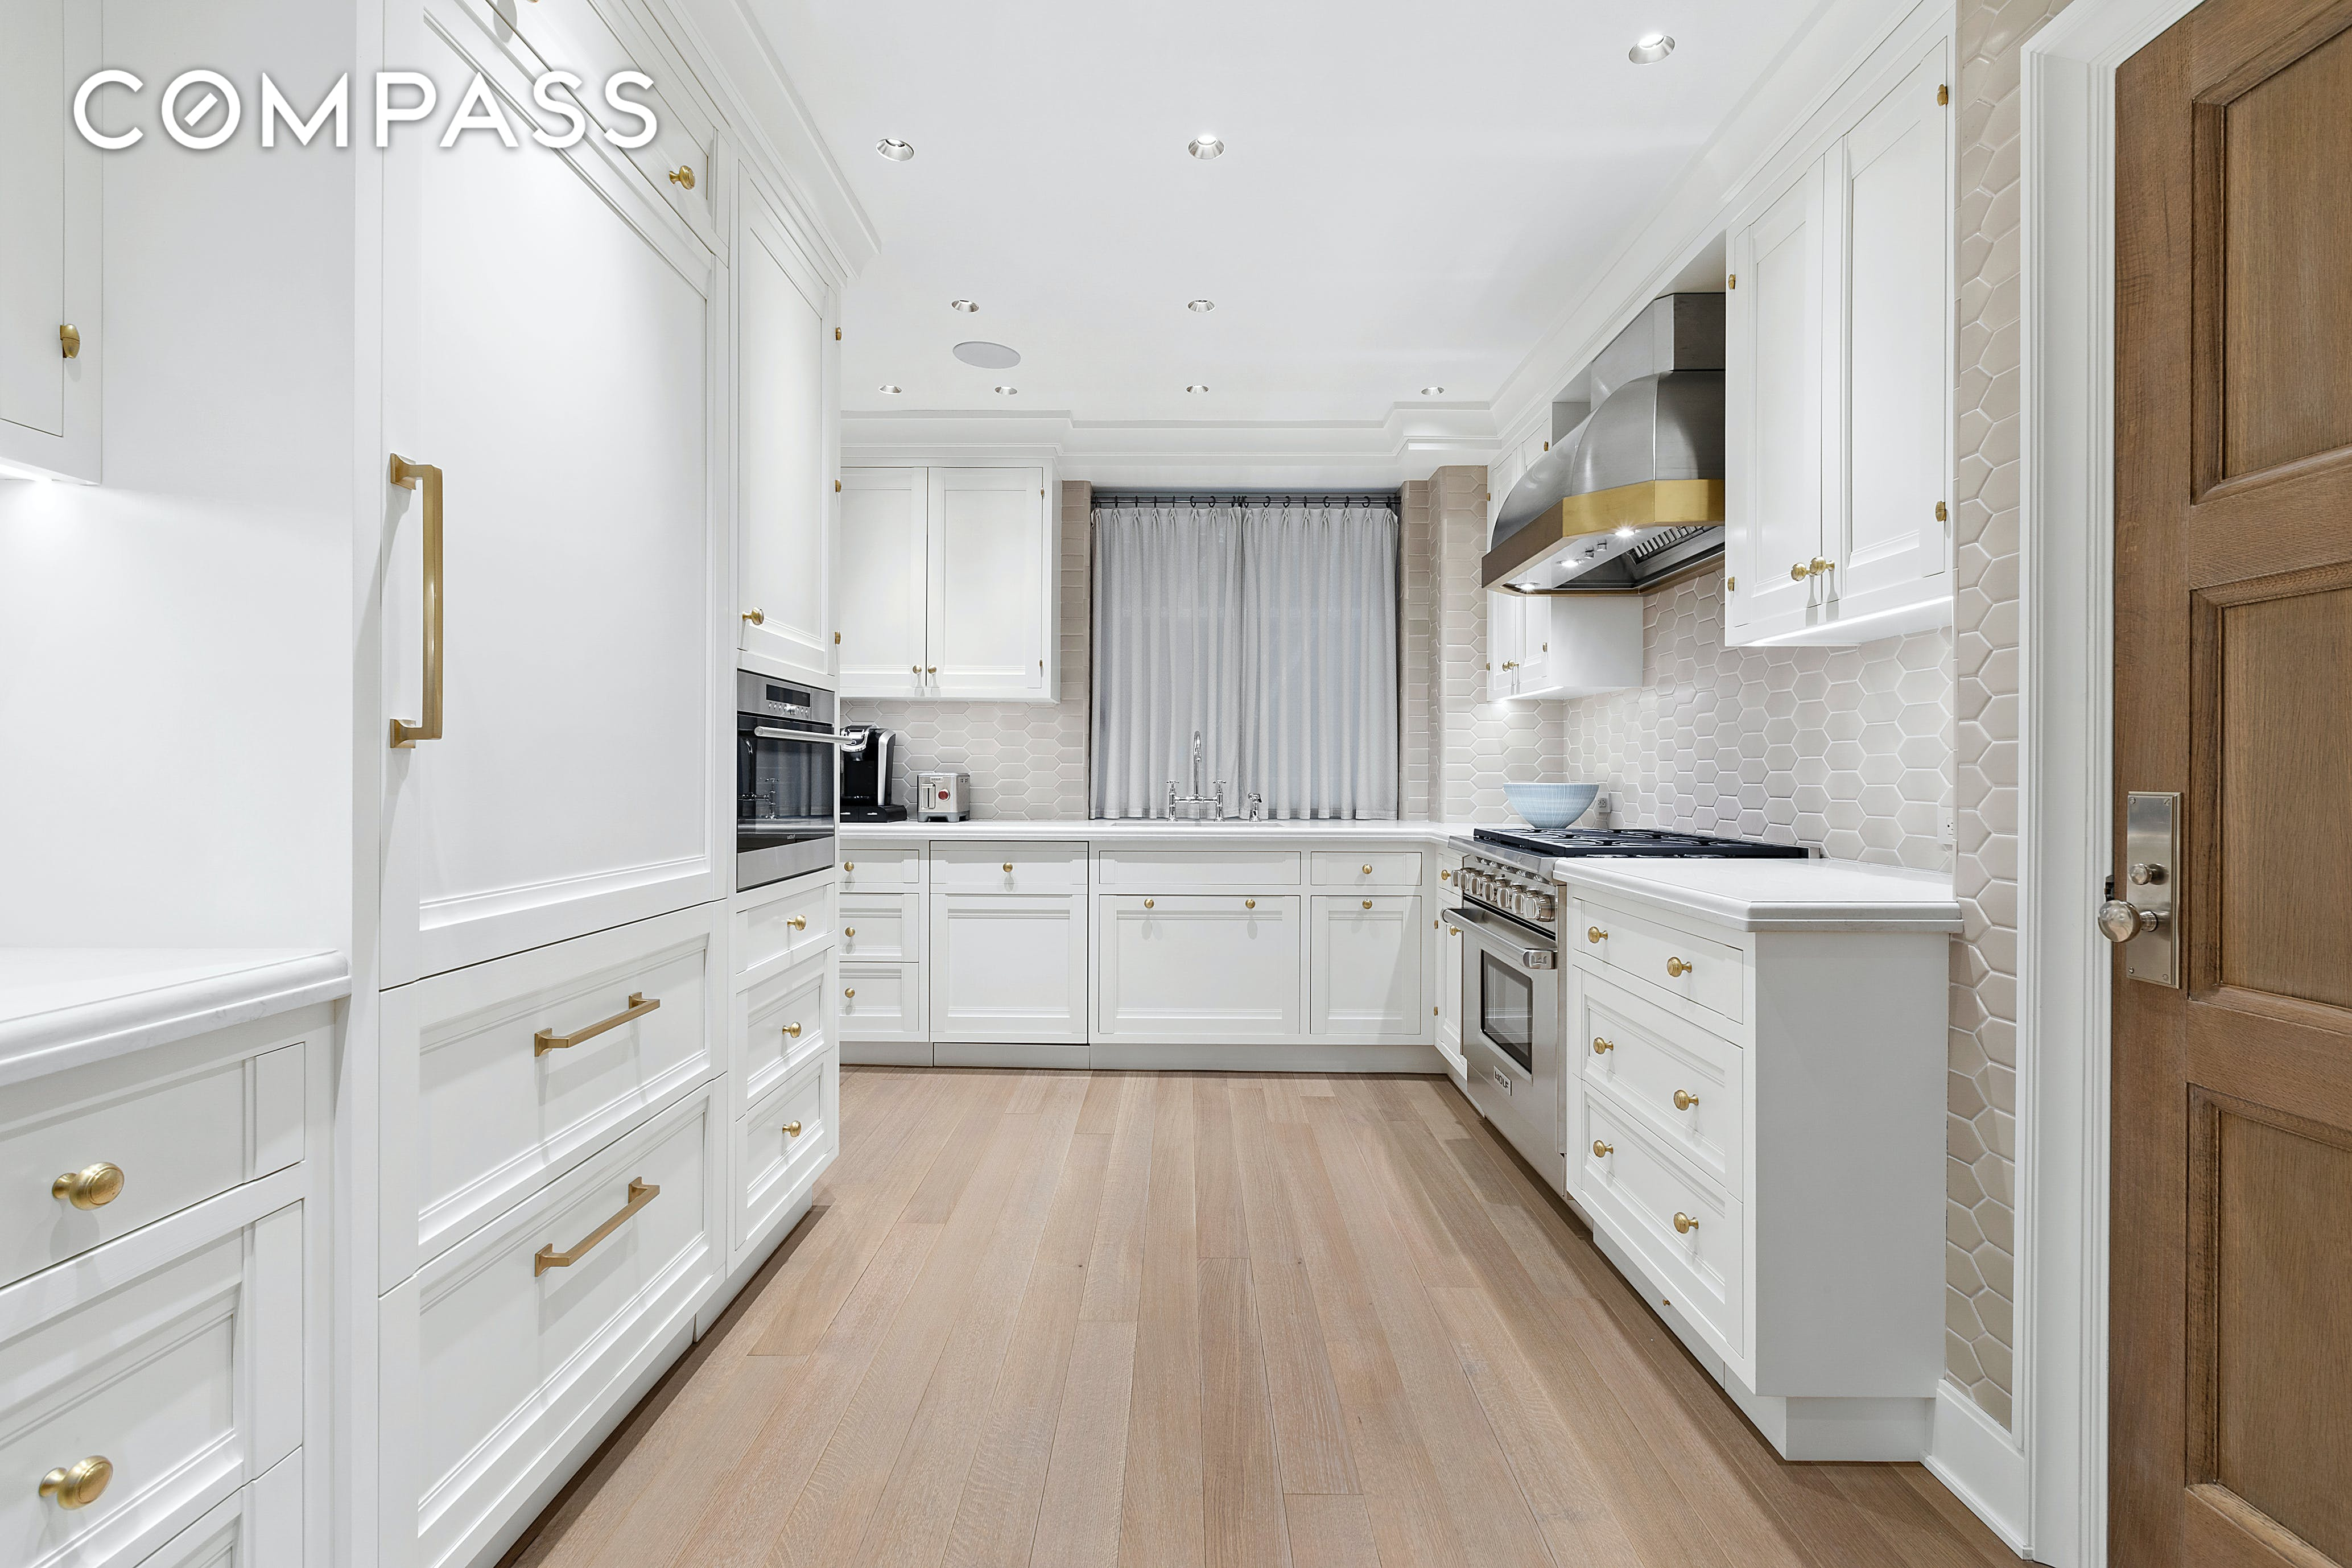 15 West 81st Street Upper West Side New York NY 10024